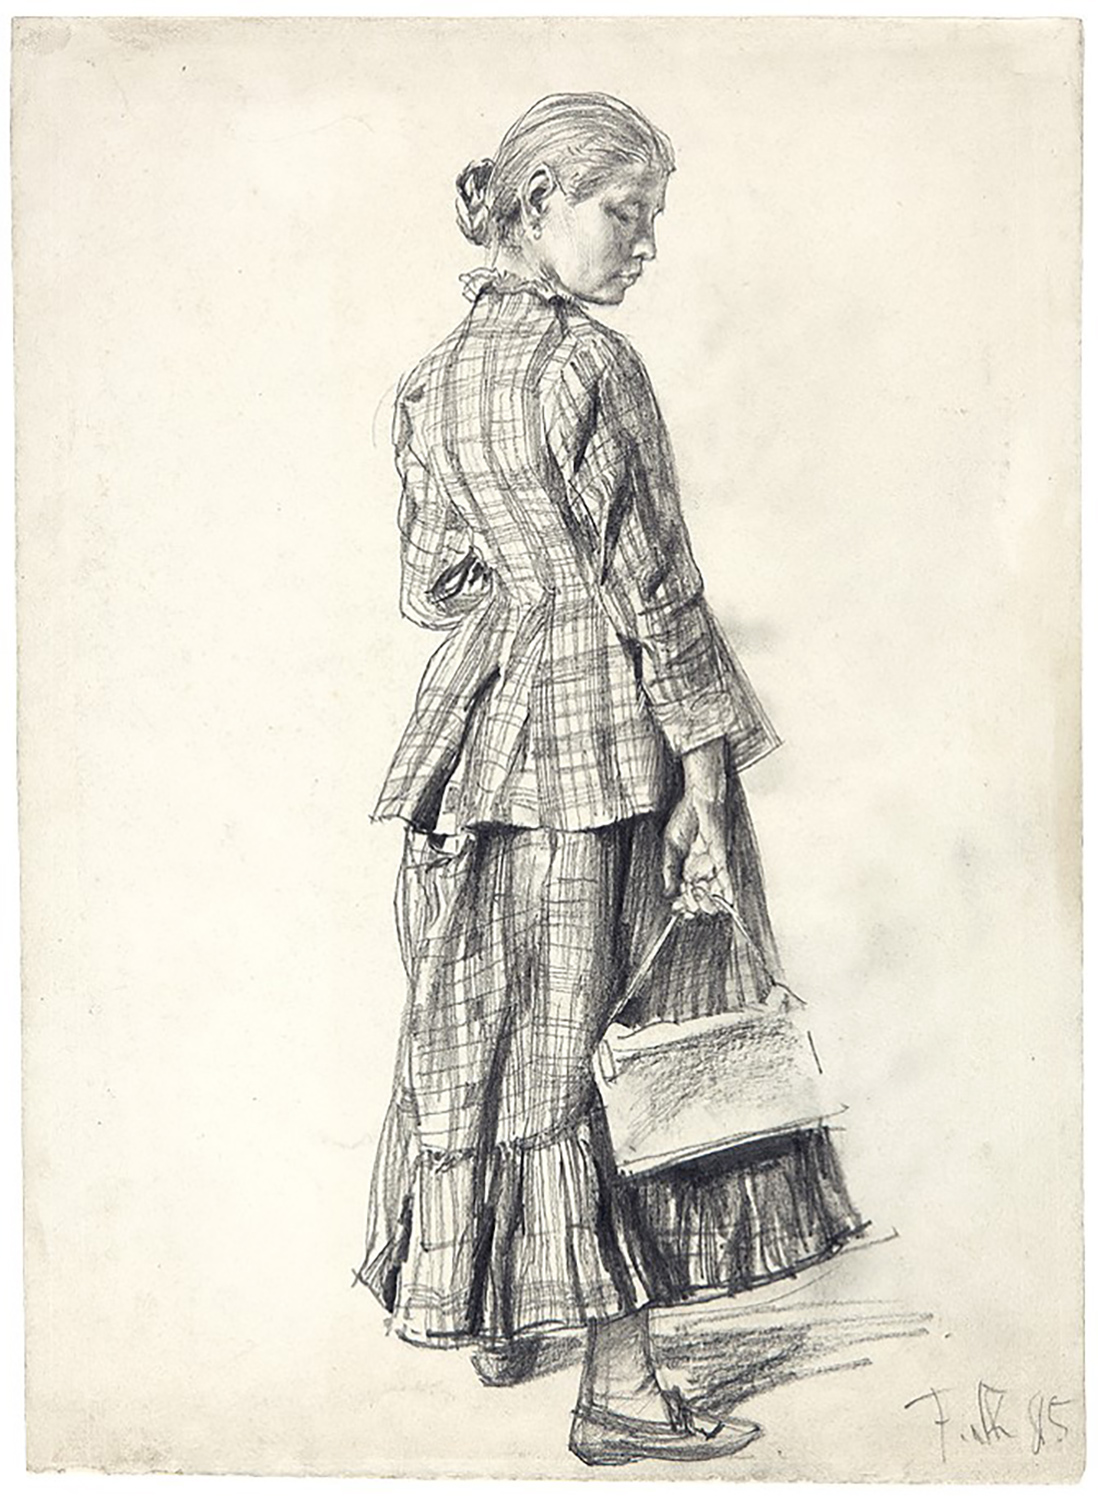 Franz Skarbina, Young Woman in Street Costume, 1885. Graphite. Harvard Art Museums/Fogg Museum, Marian H. Phinney Fund, 2017.112.